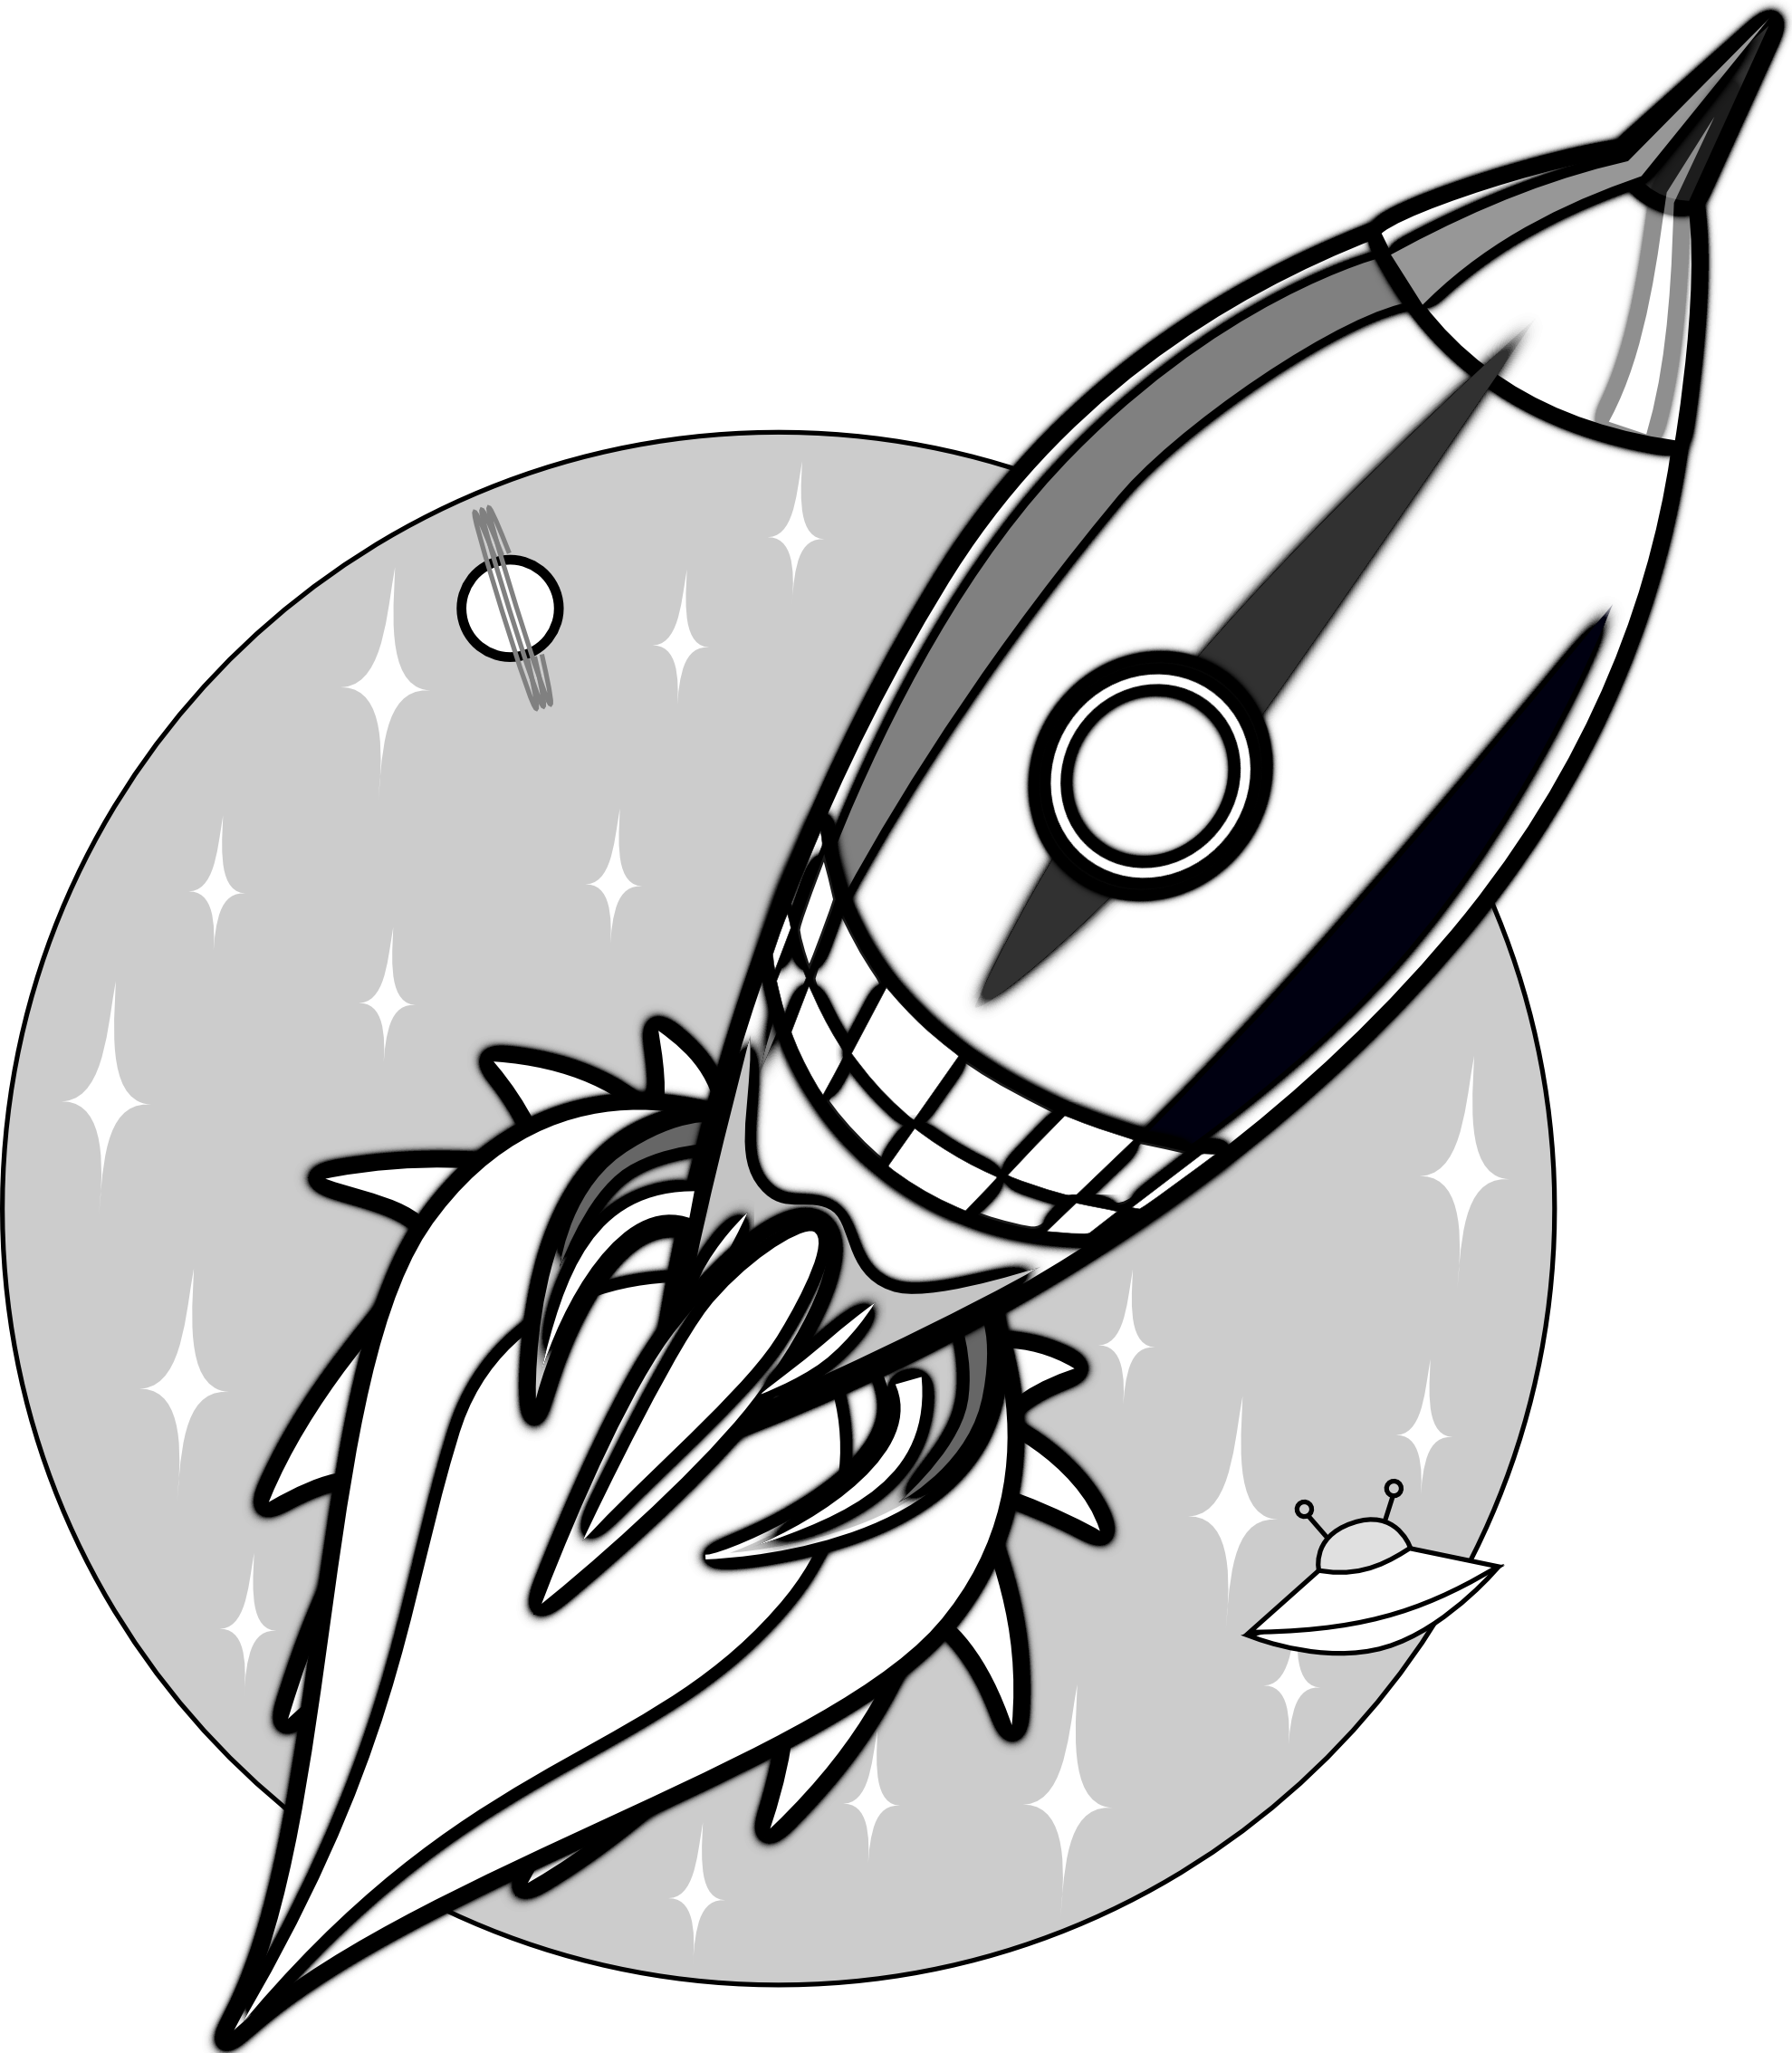 images for u003e rocket clip art black and white rockets pinterest rh pinterest com clip art black and white stars clip art black and white stars